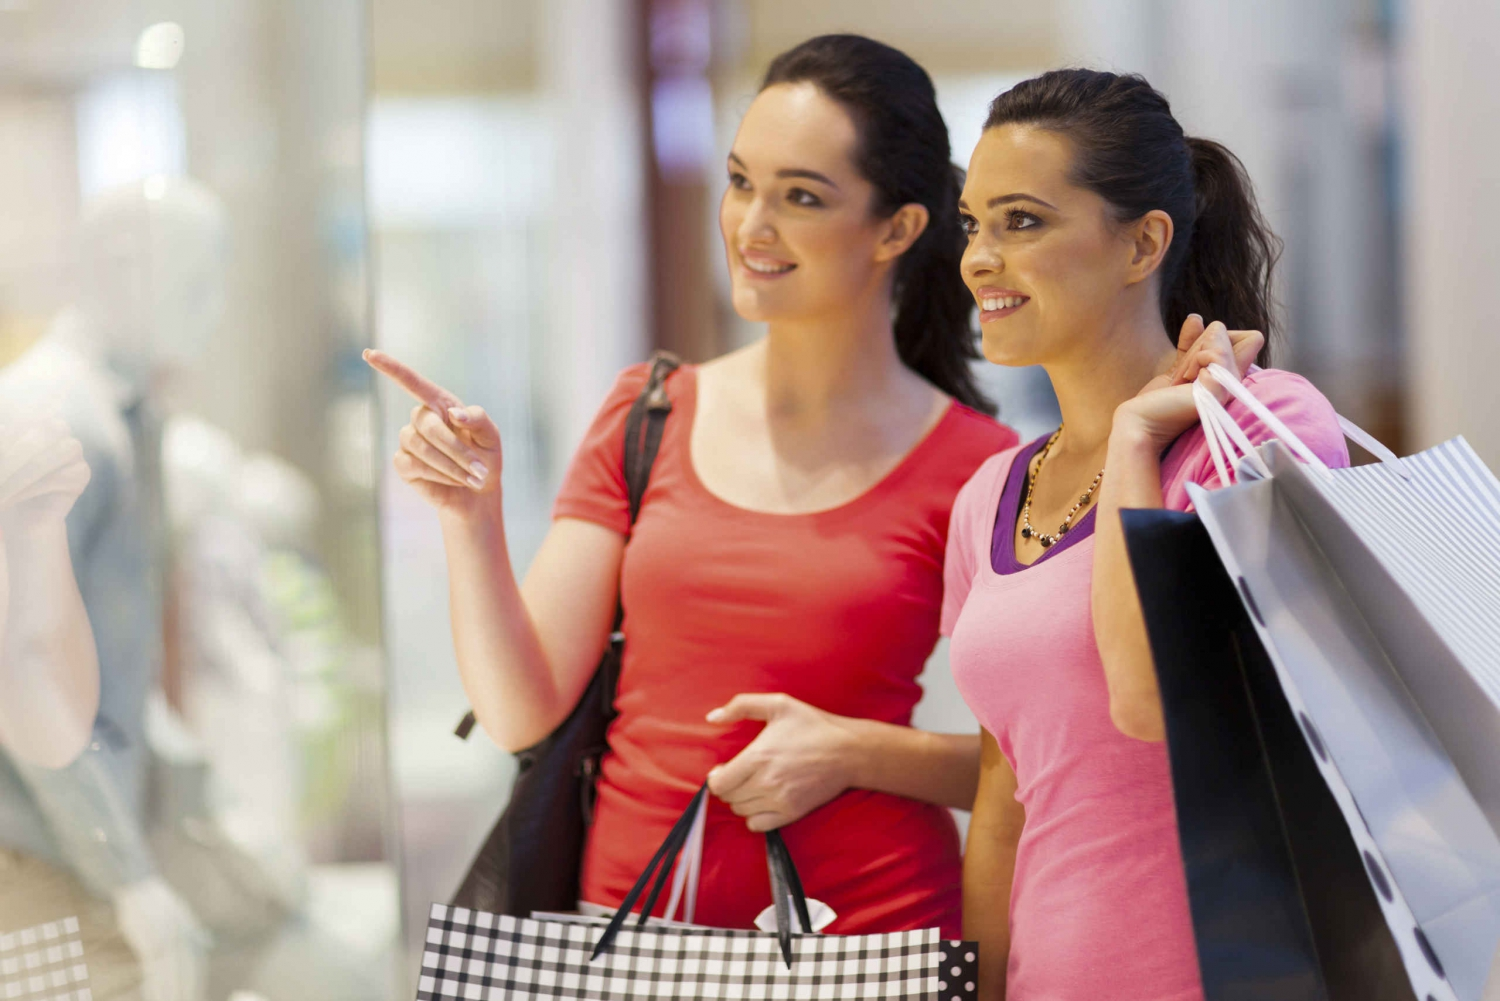 Shop & Shuttle Woodbury Common Premium Outlets from NYC